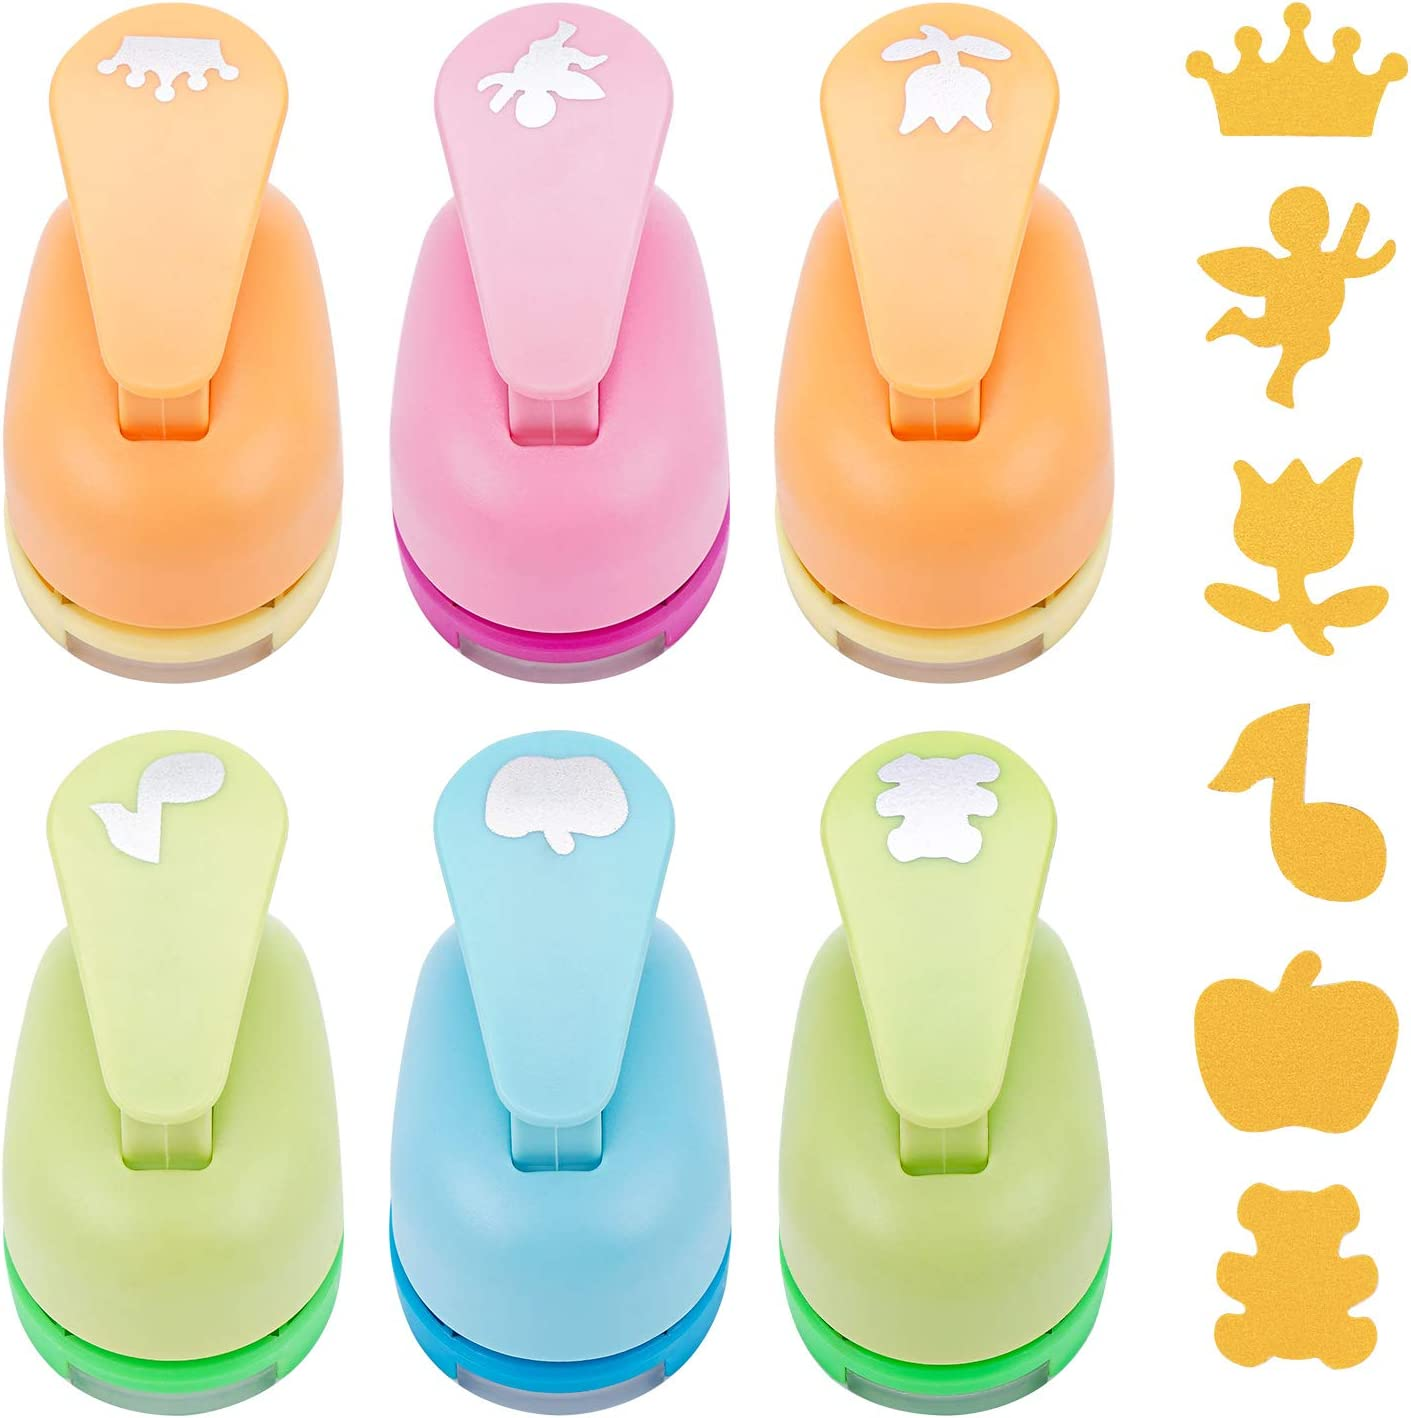 Hole Paper Puncher, Dynvue 6pcs 1inch Punch for Paper Sheet Handmade Scrapbooking Crafting Cards Design in Office School Studio Bear Music Apple Rose Crown Angel Shape